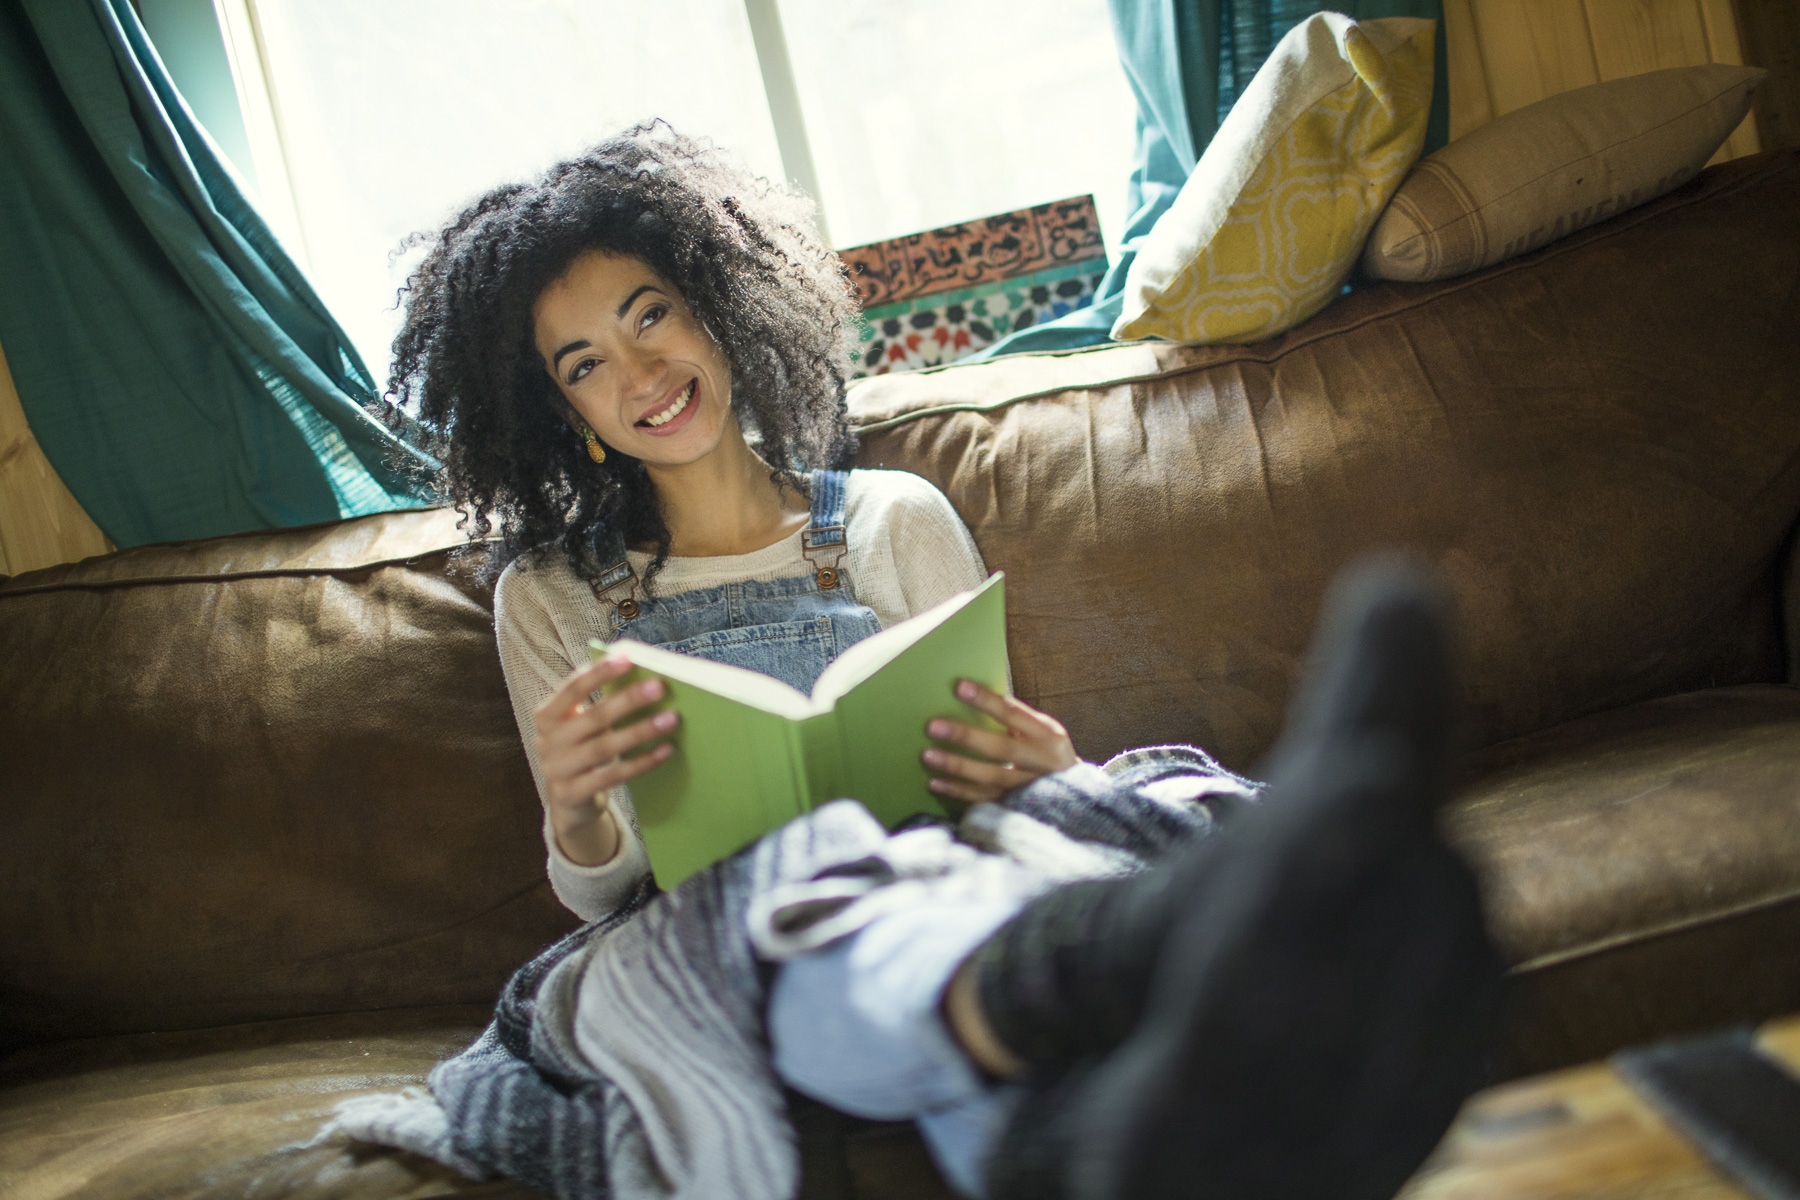 Young woman reading book in socks